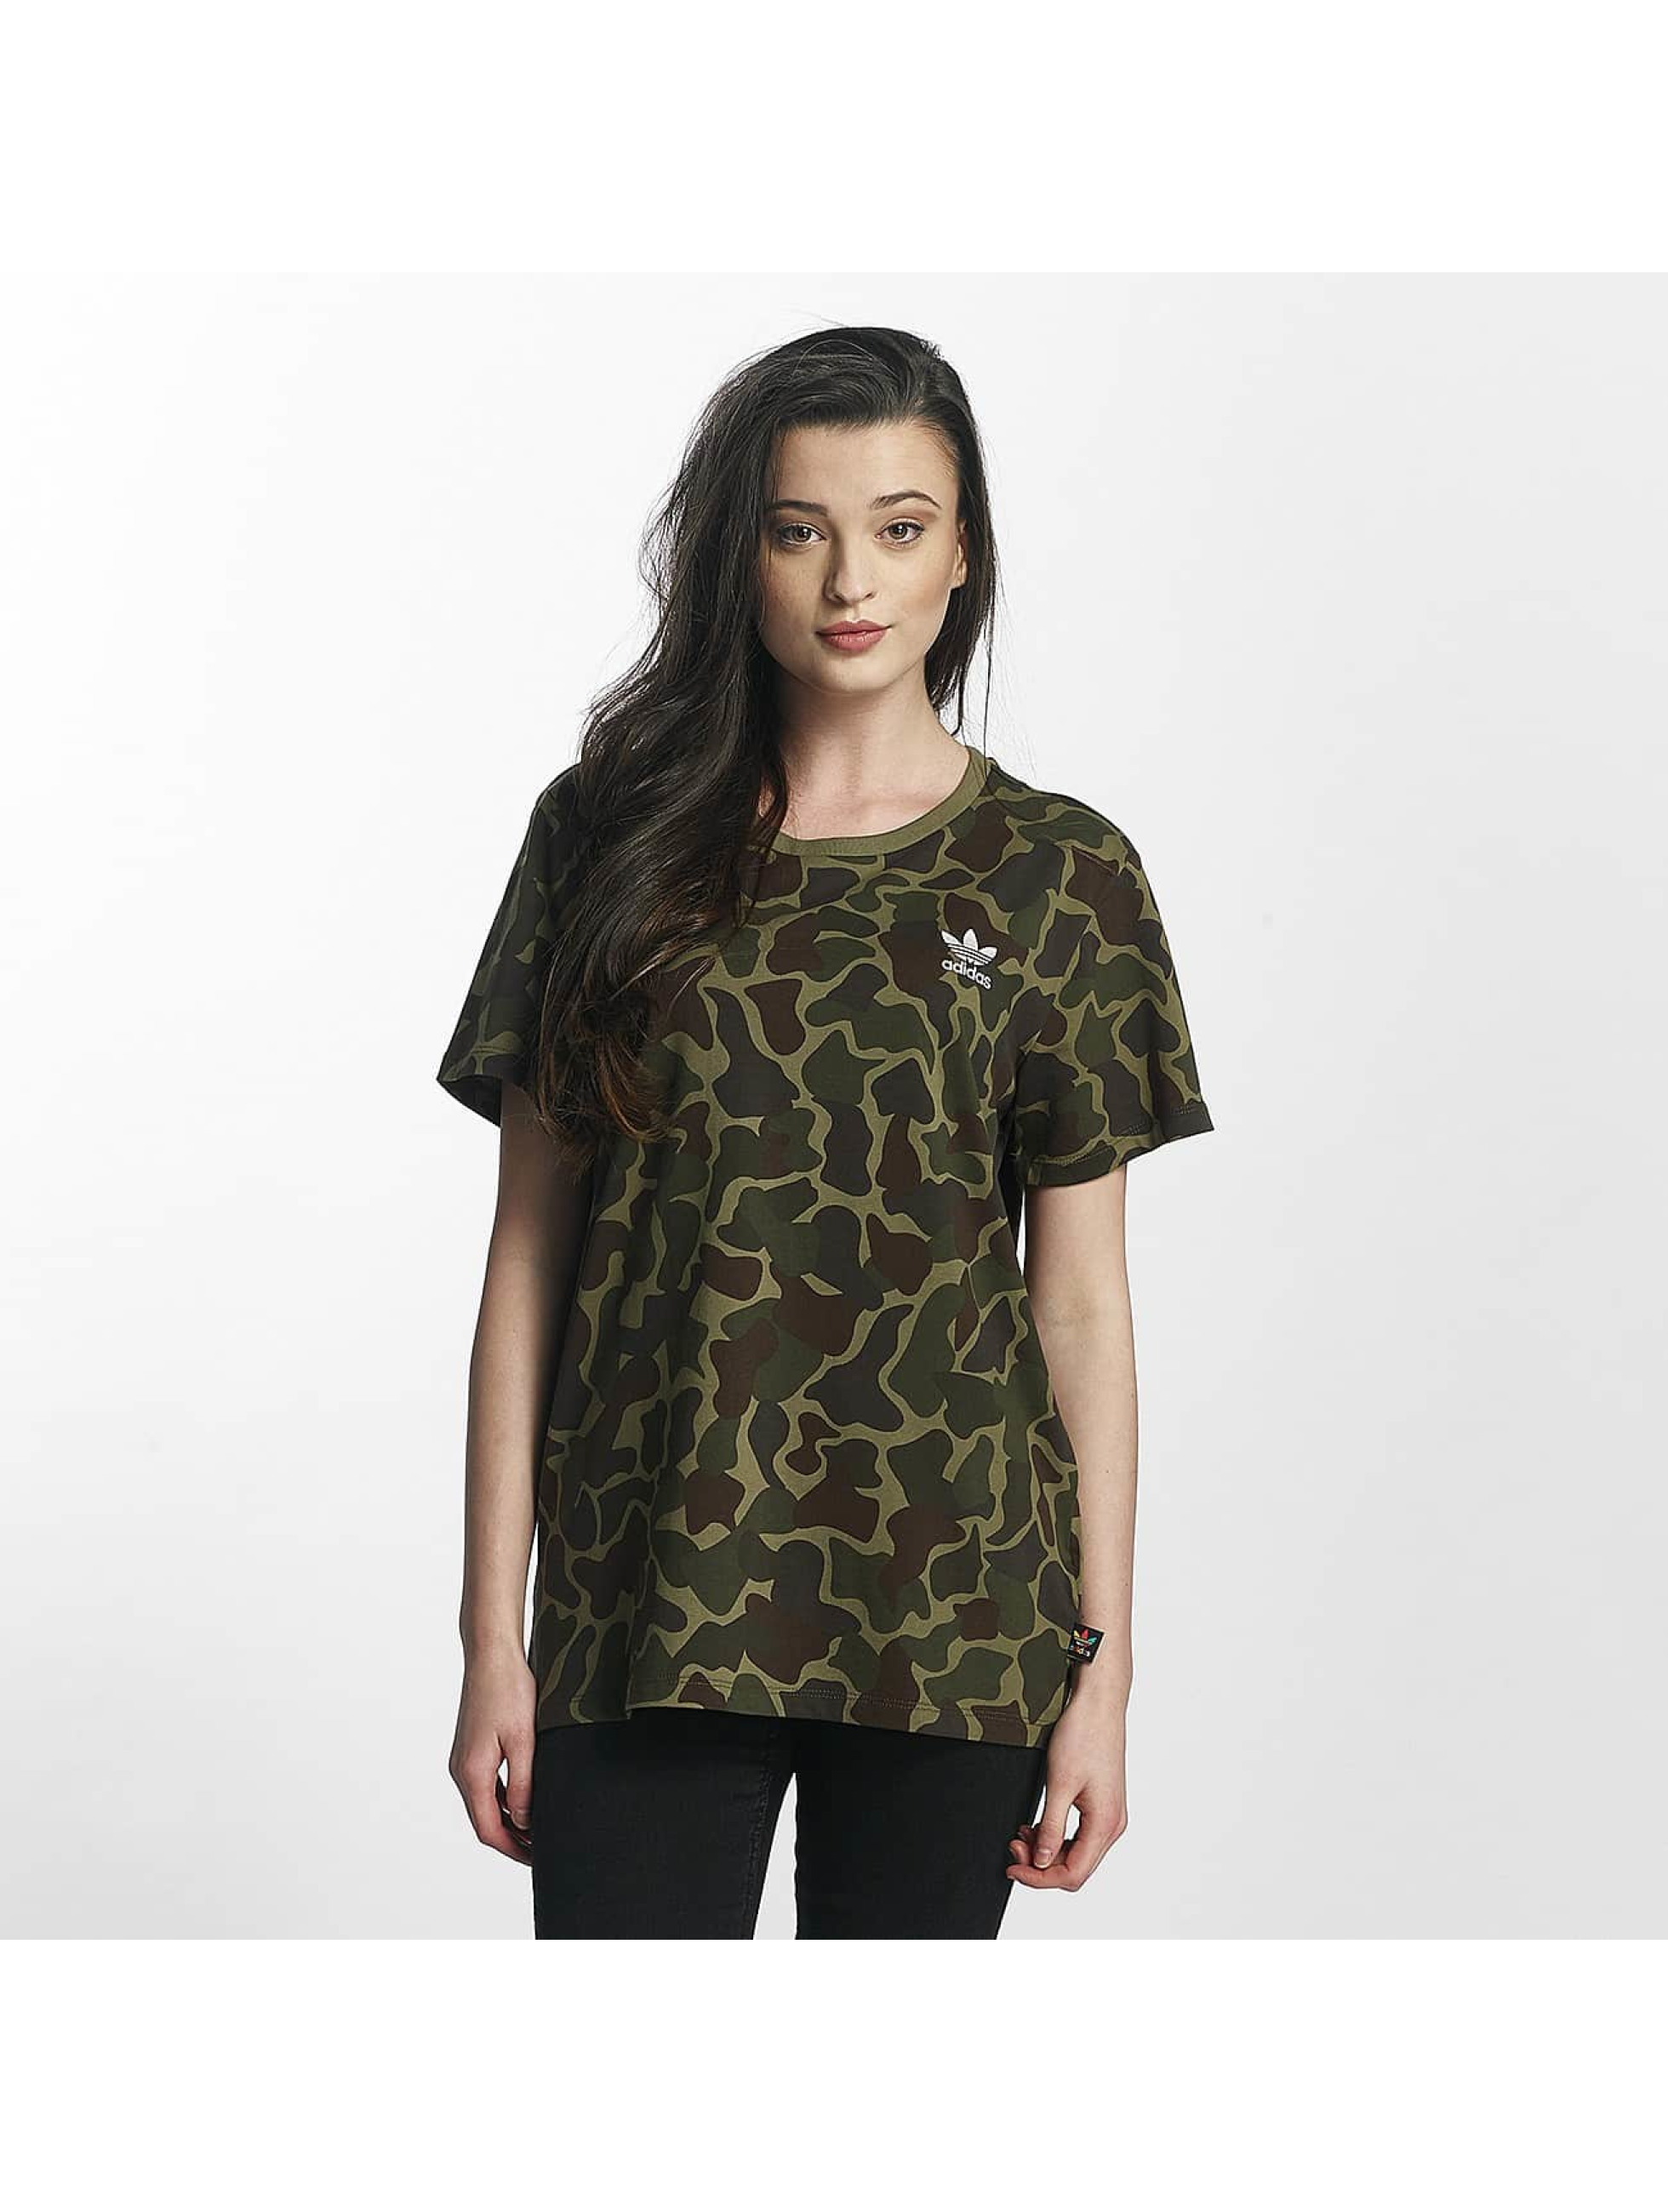 adidas damen t shirt pw hu hiking logo in camouflage 369413. Black Bedroom Furniture Sets. Home Design Ideas